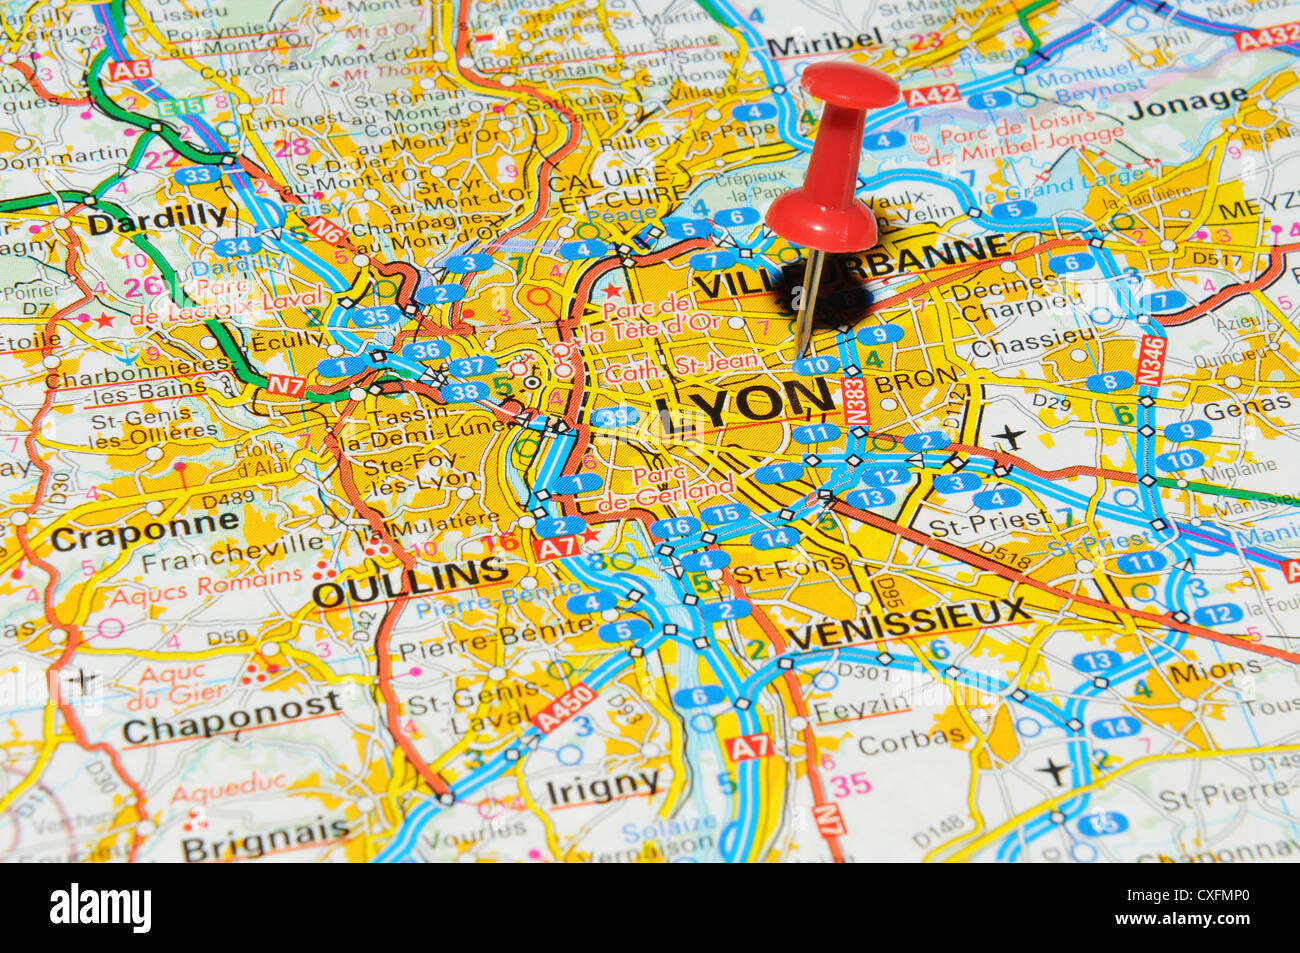 Map of france travel to us destination businessontravel lyon france on map gumiabroncs Gallery